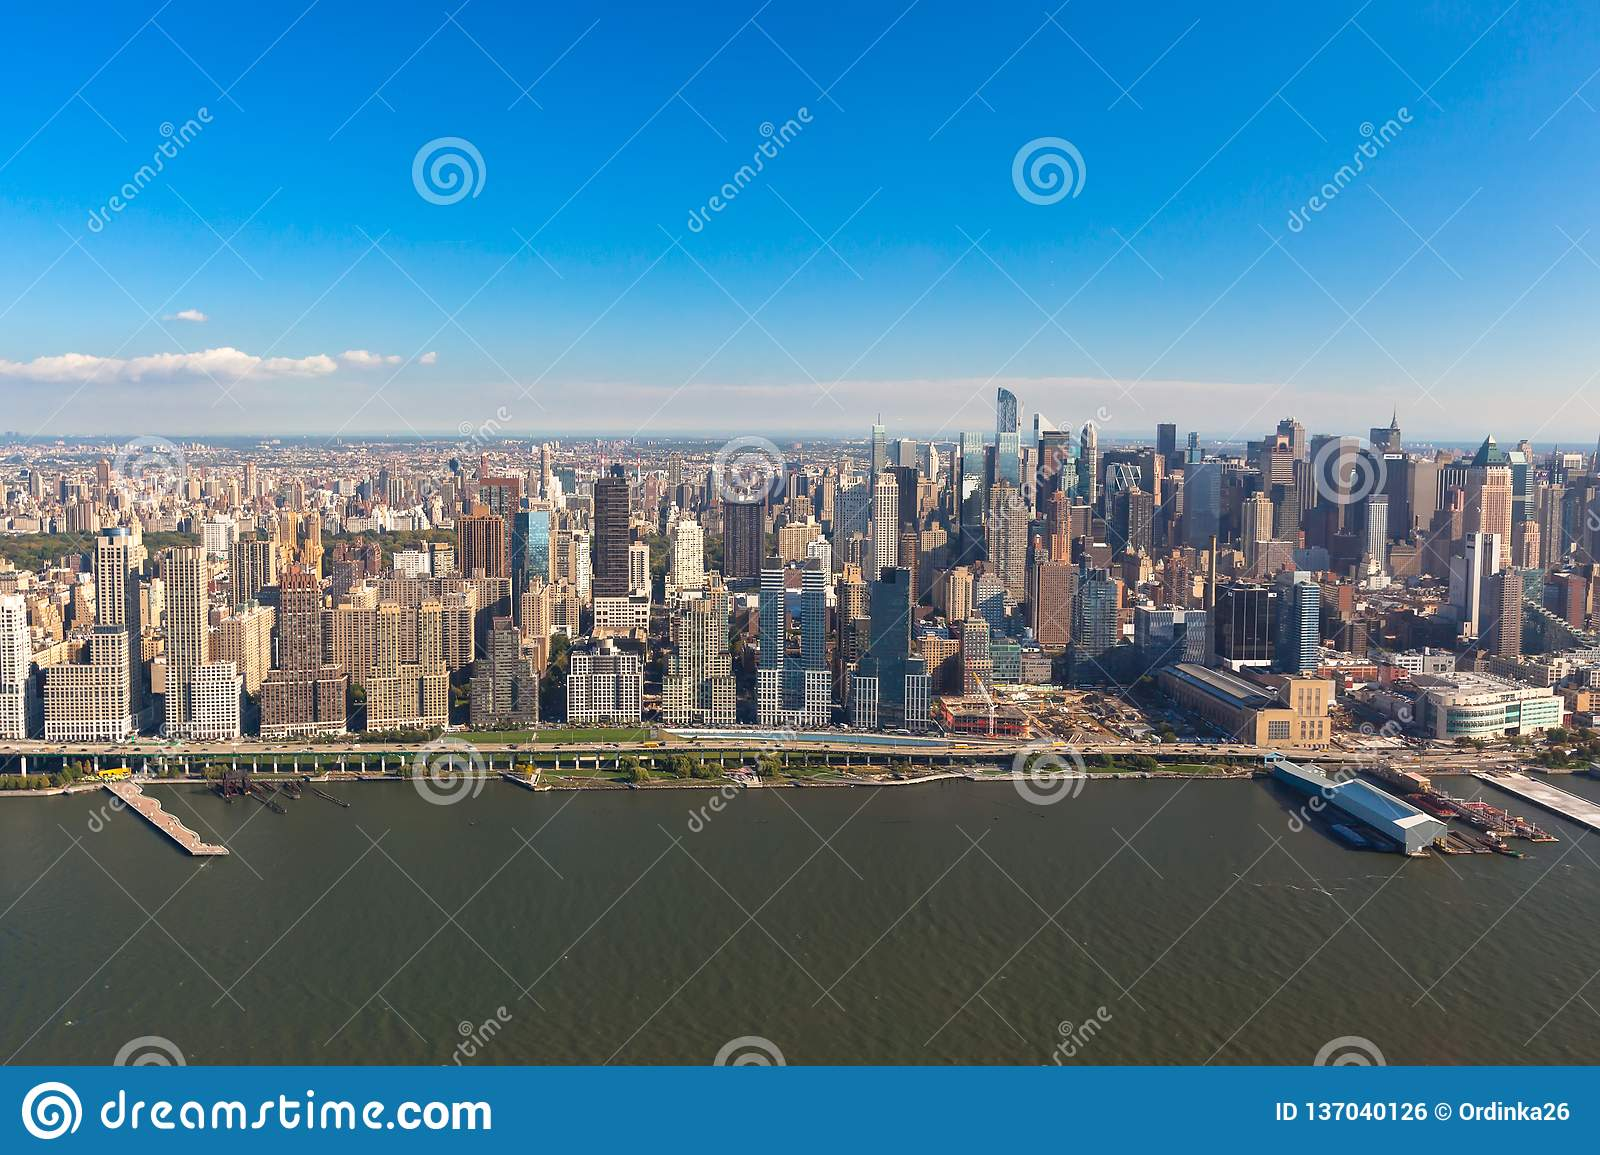 New York Midtown Manhattan in NYC NY in USA. Aerial helicopter view